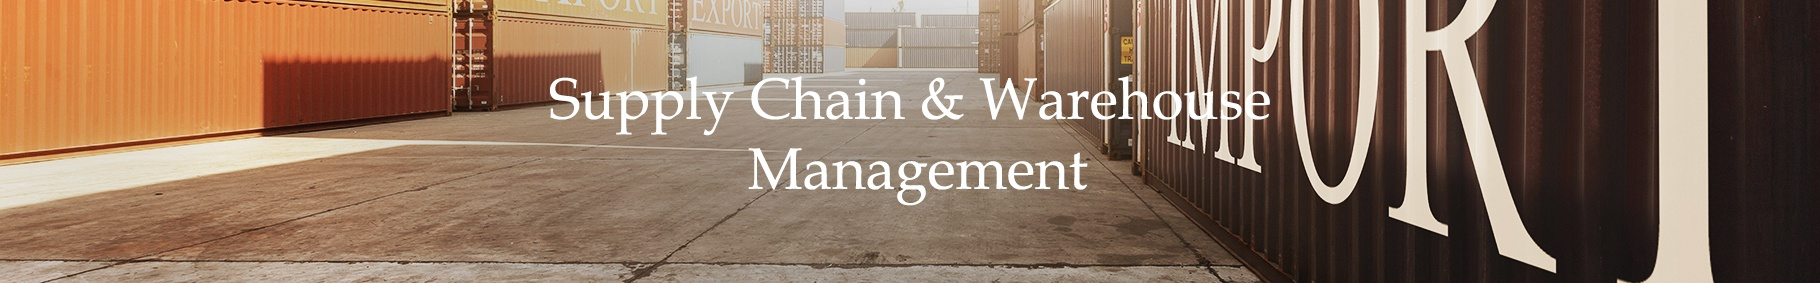 3. Supply-Chain_Warehouse.jpg